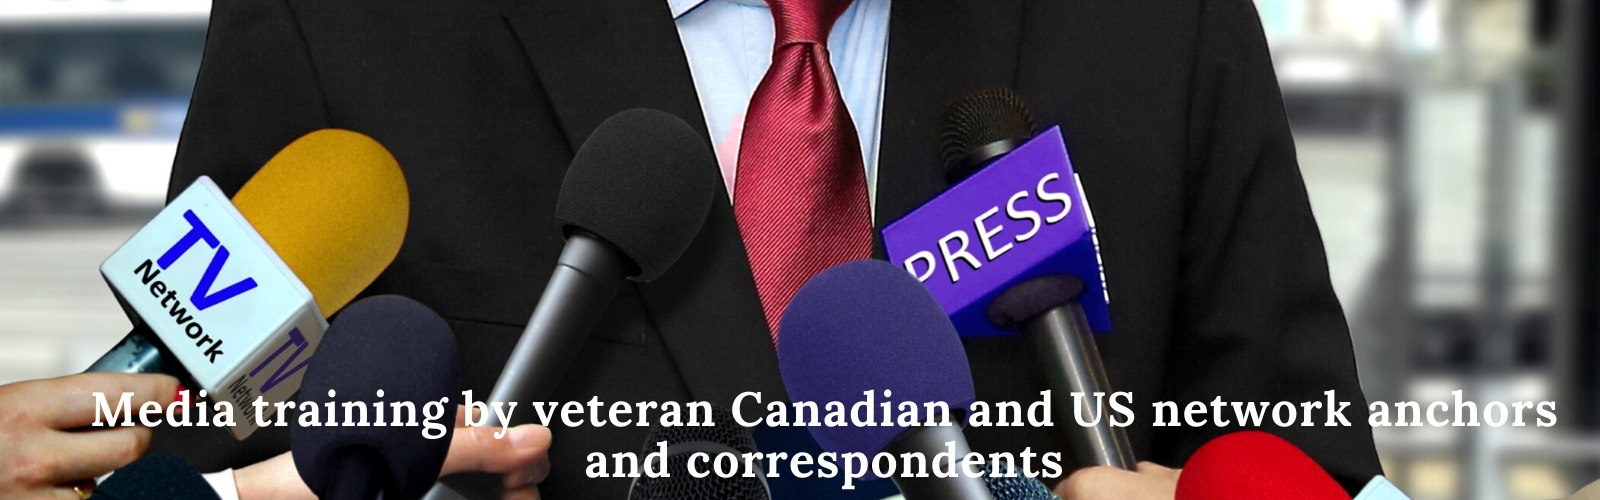 Media training by veteran Canadian and US network anchors and correspondents